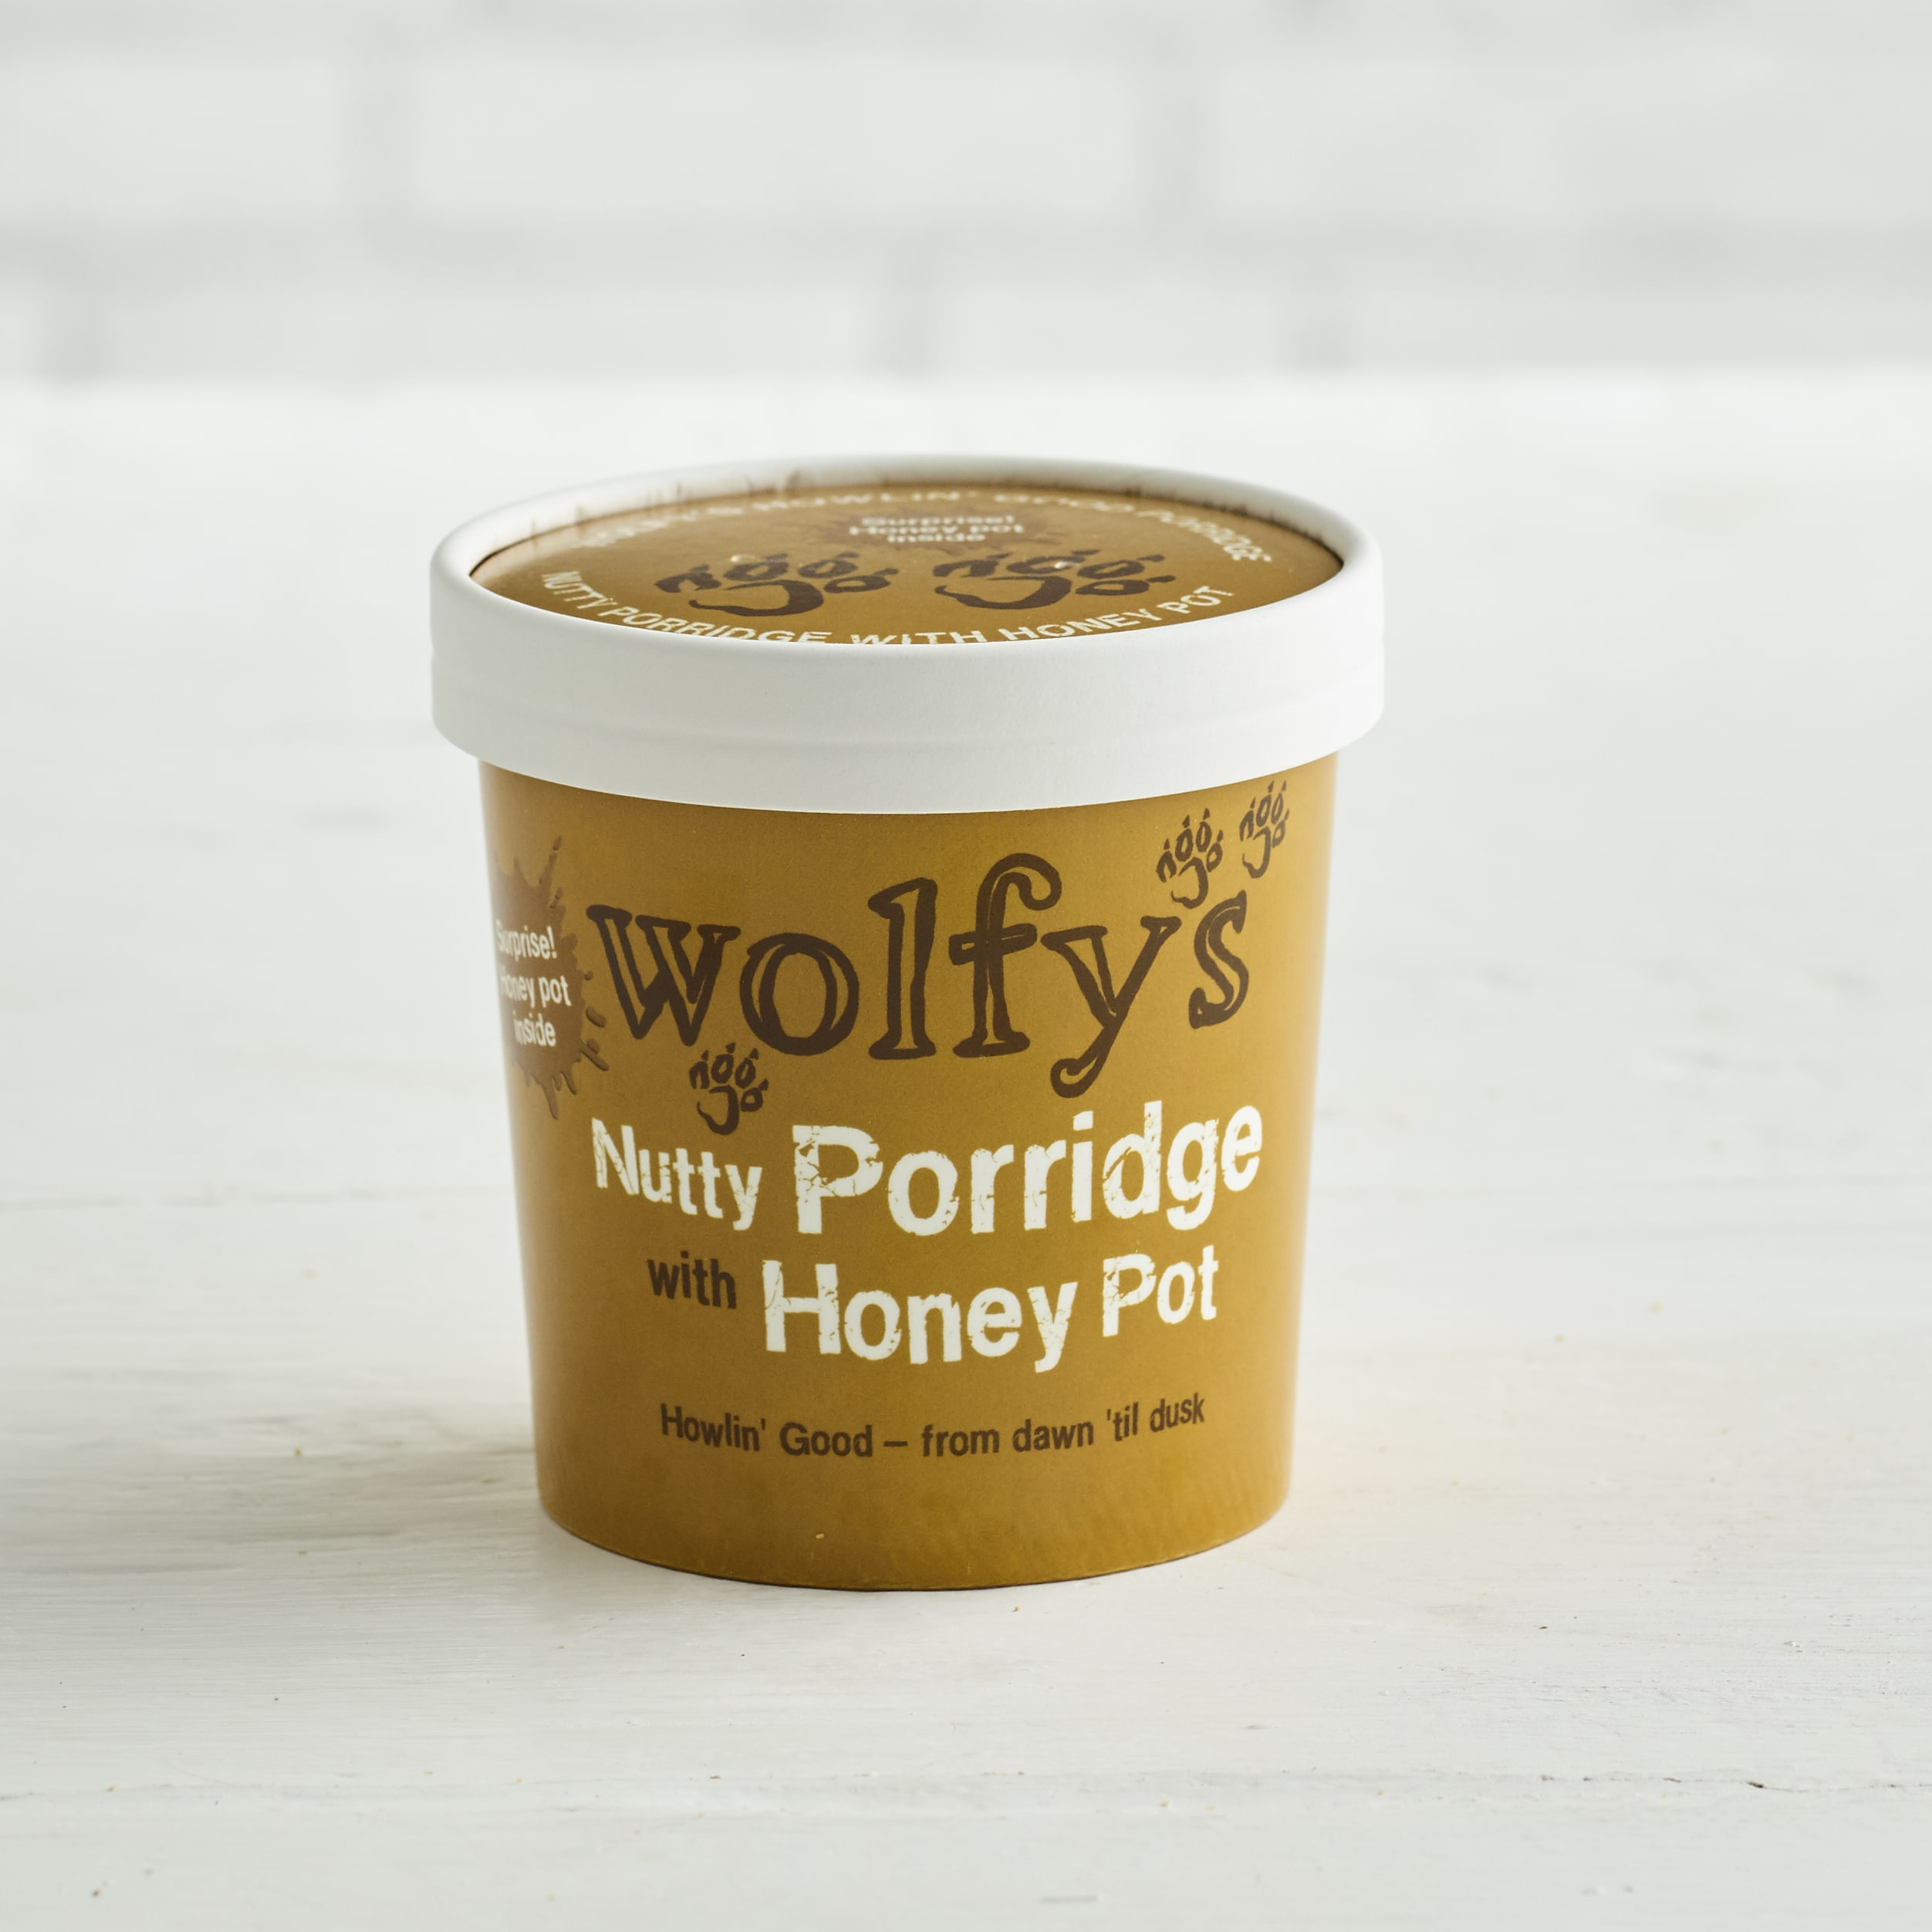 Wolfys Nutty Porridge with Honey Pot, 90g